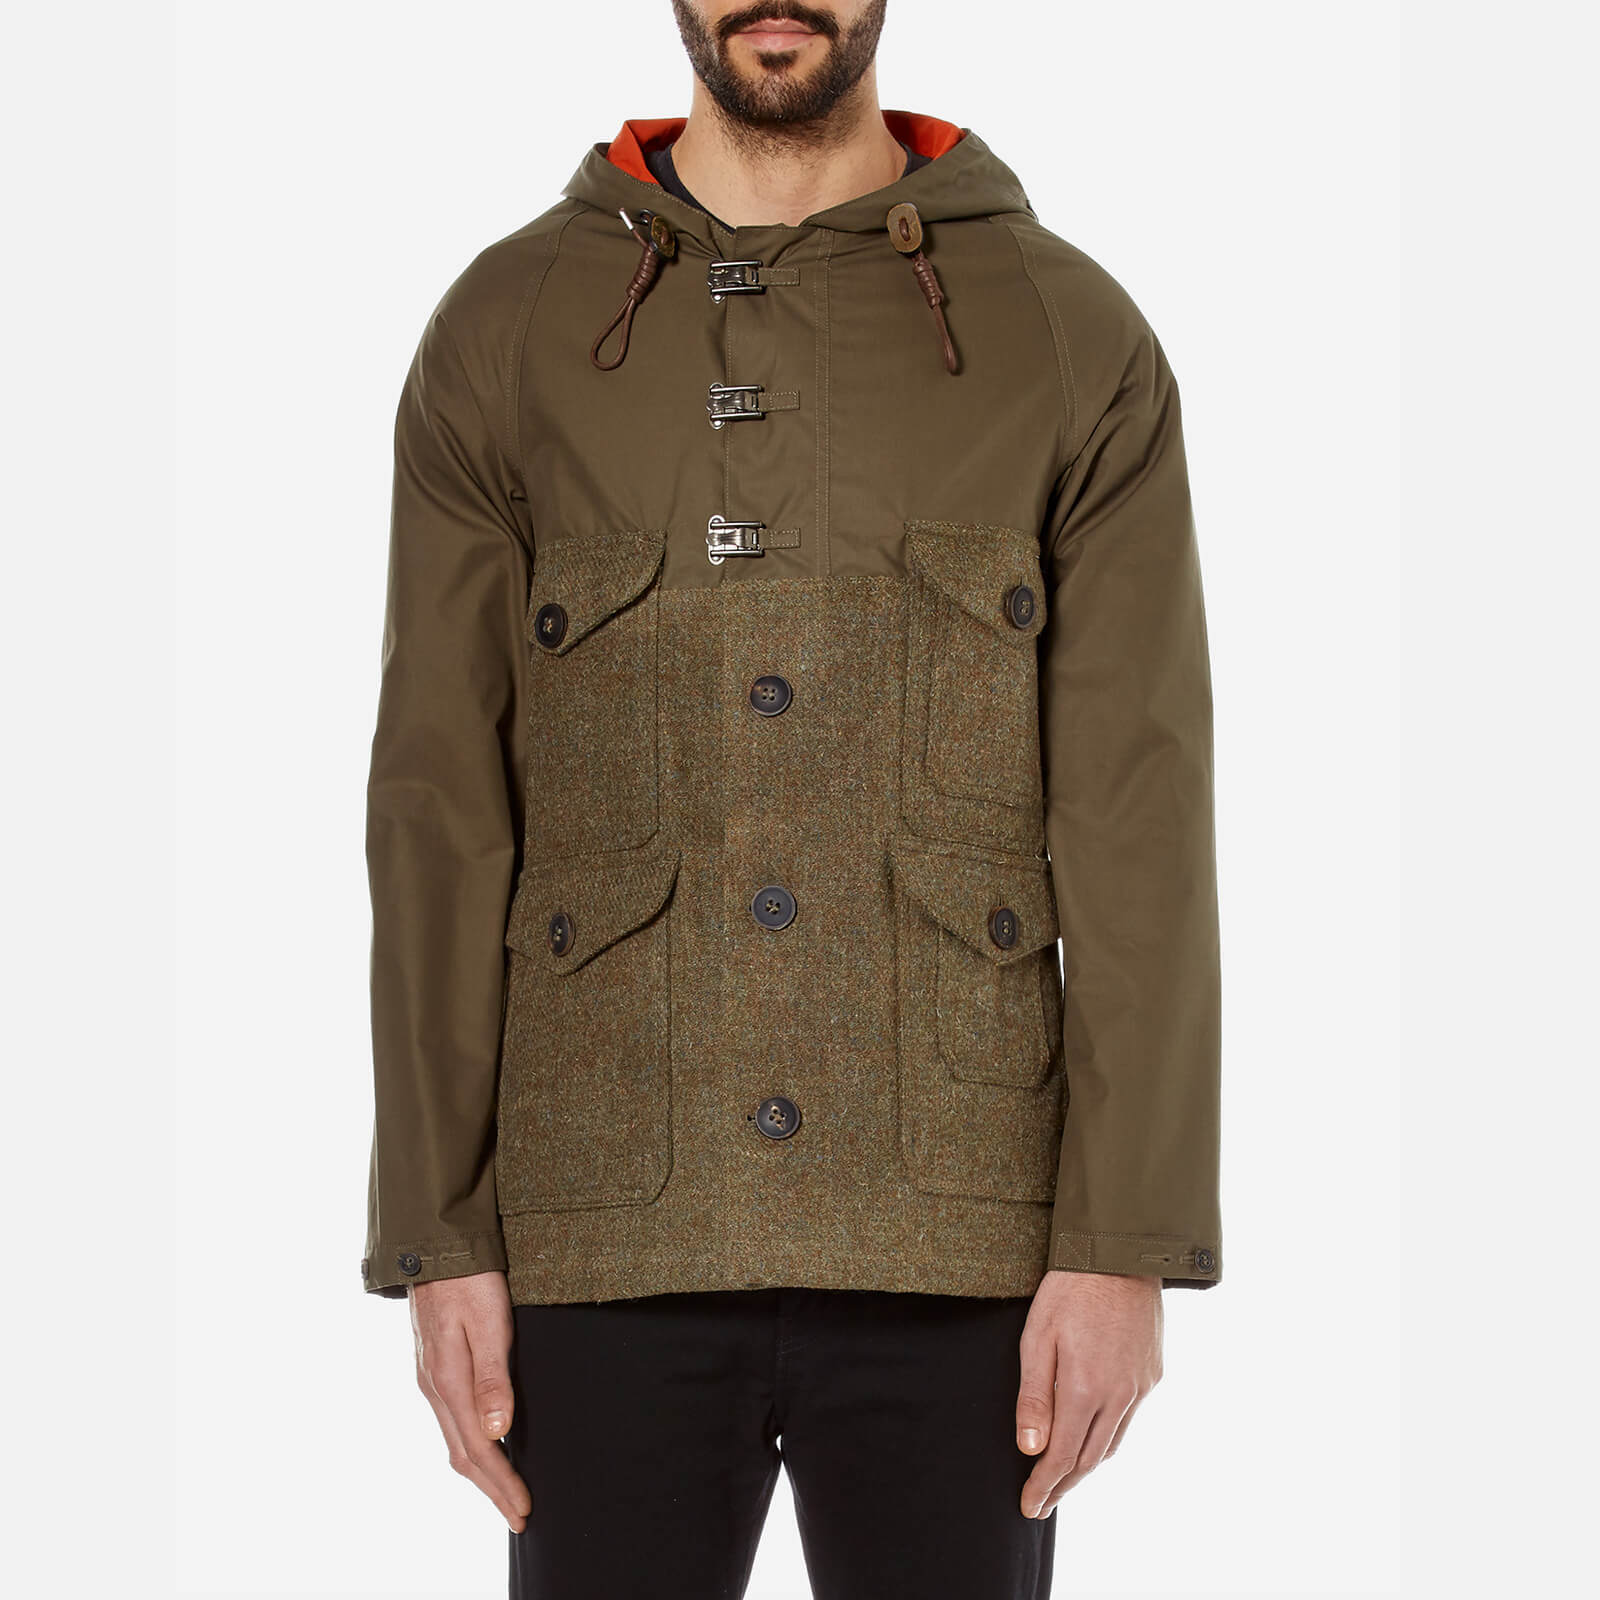 58797159478c Nigel Cabourn Men s Hybrid Finish Harris Tweed Cameraman Converse Jacket -  Army - Free UK Delivery over £50